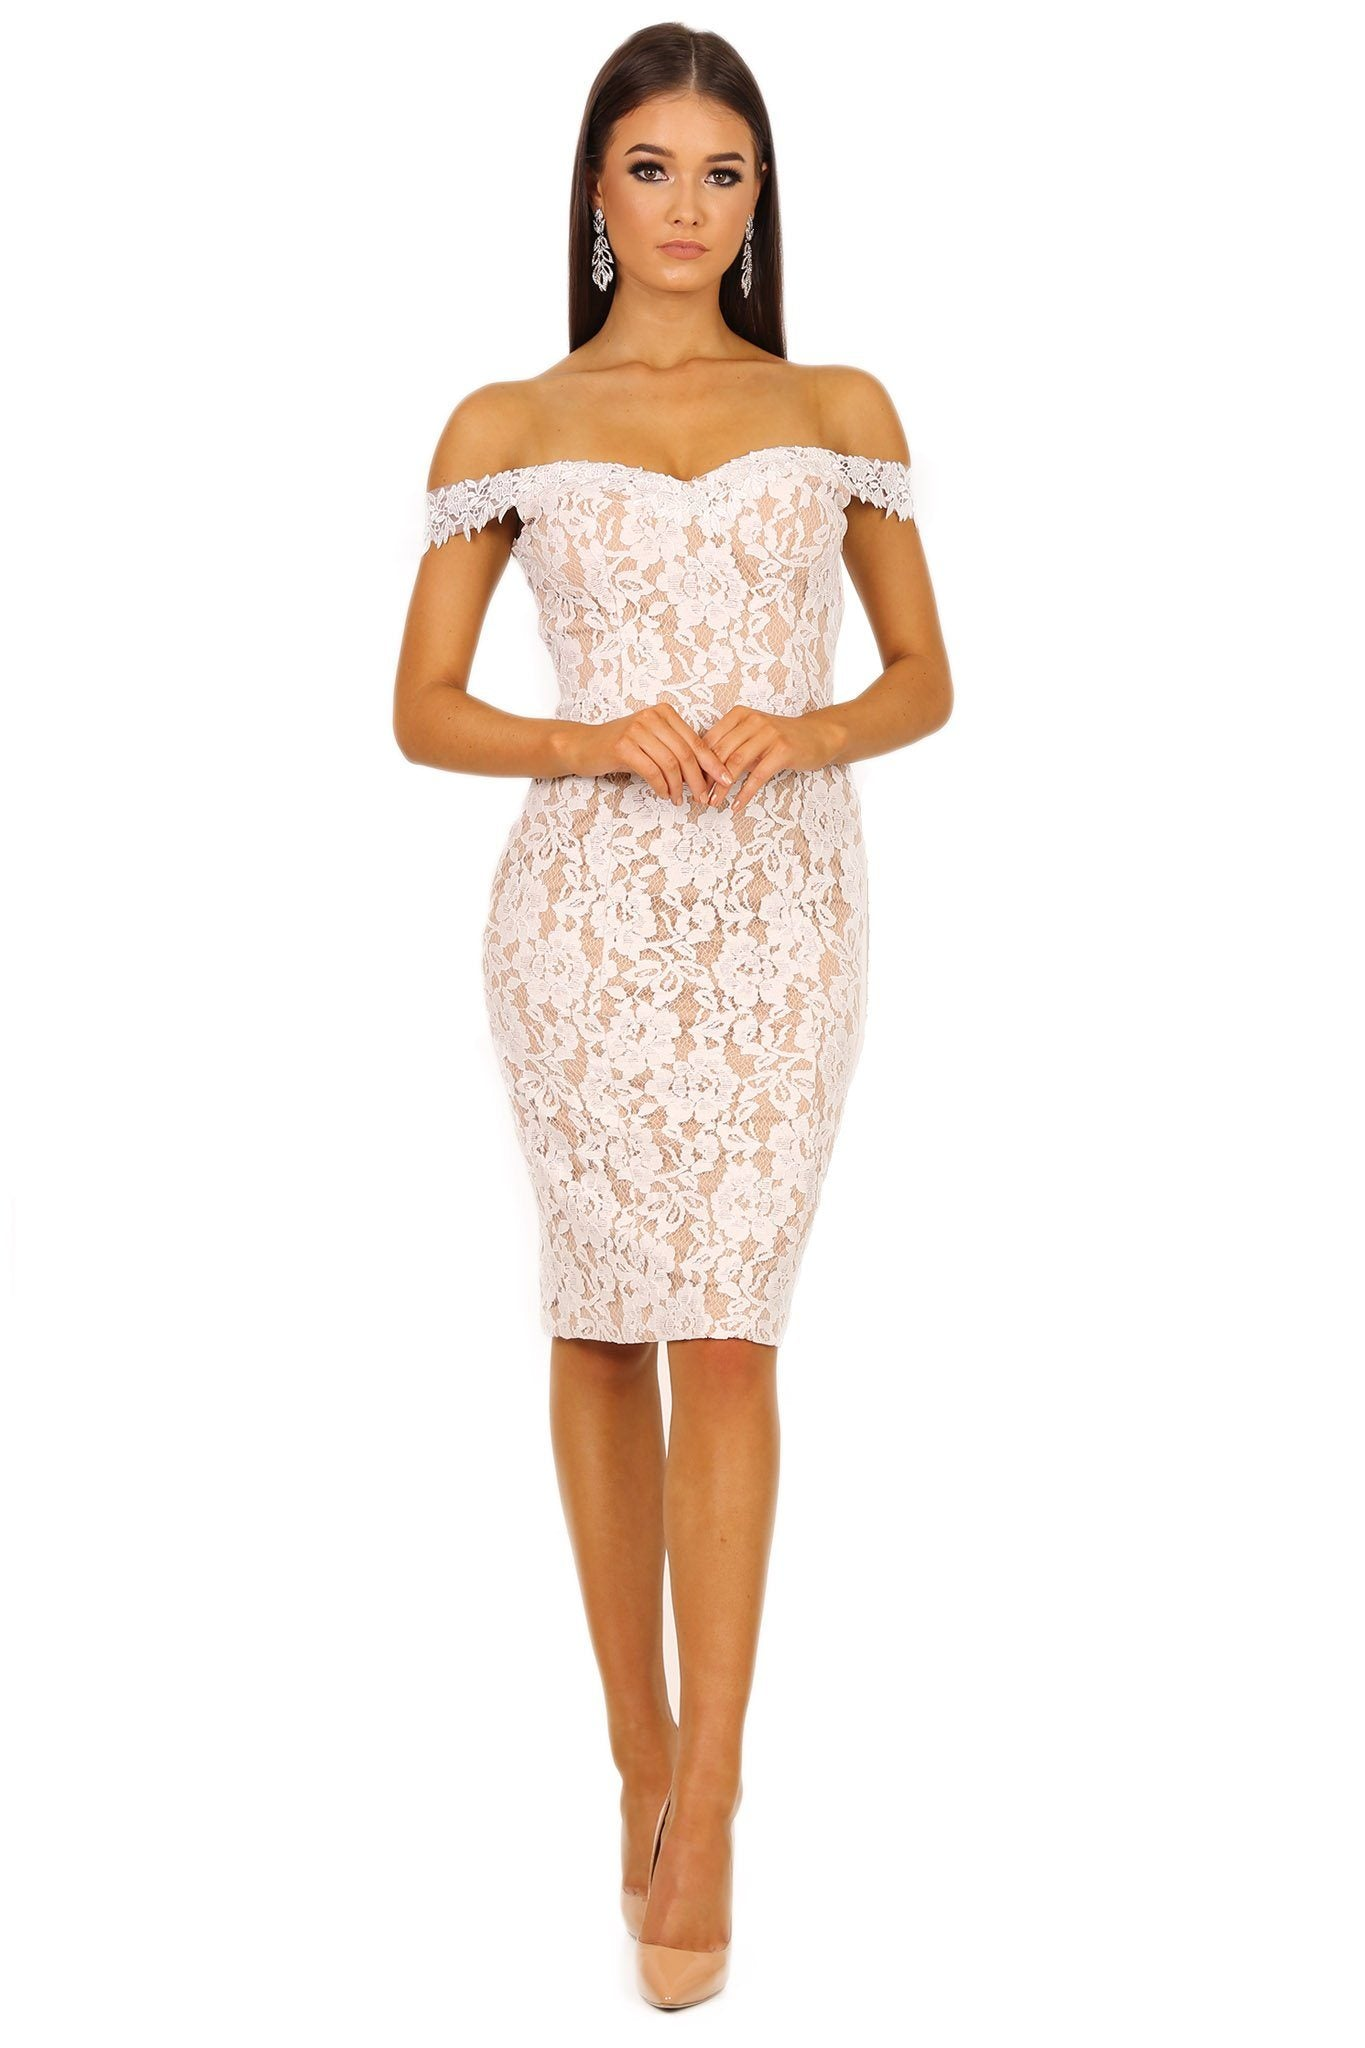 cf466751d White lace knee-length dress with beige nude illusion underlay, off the  shoulder design